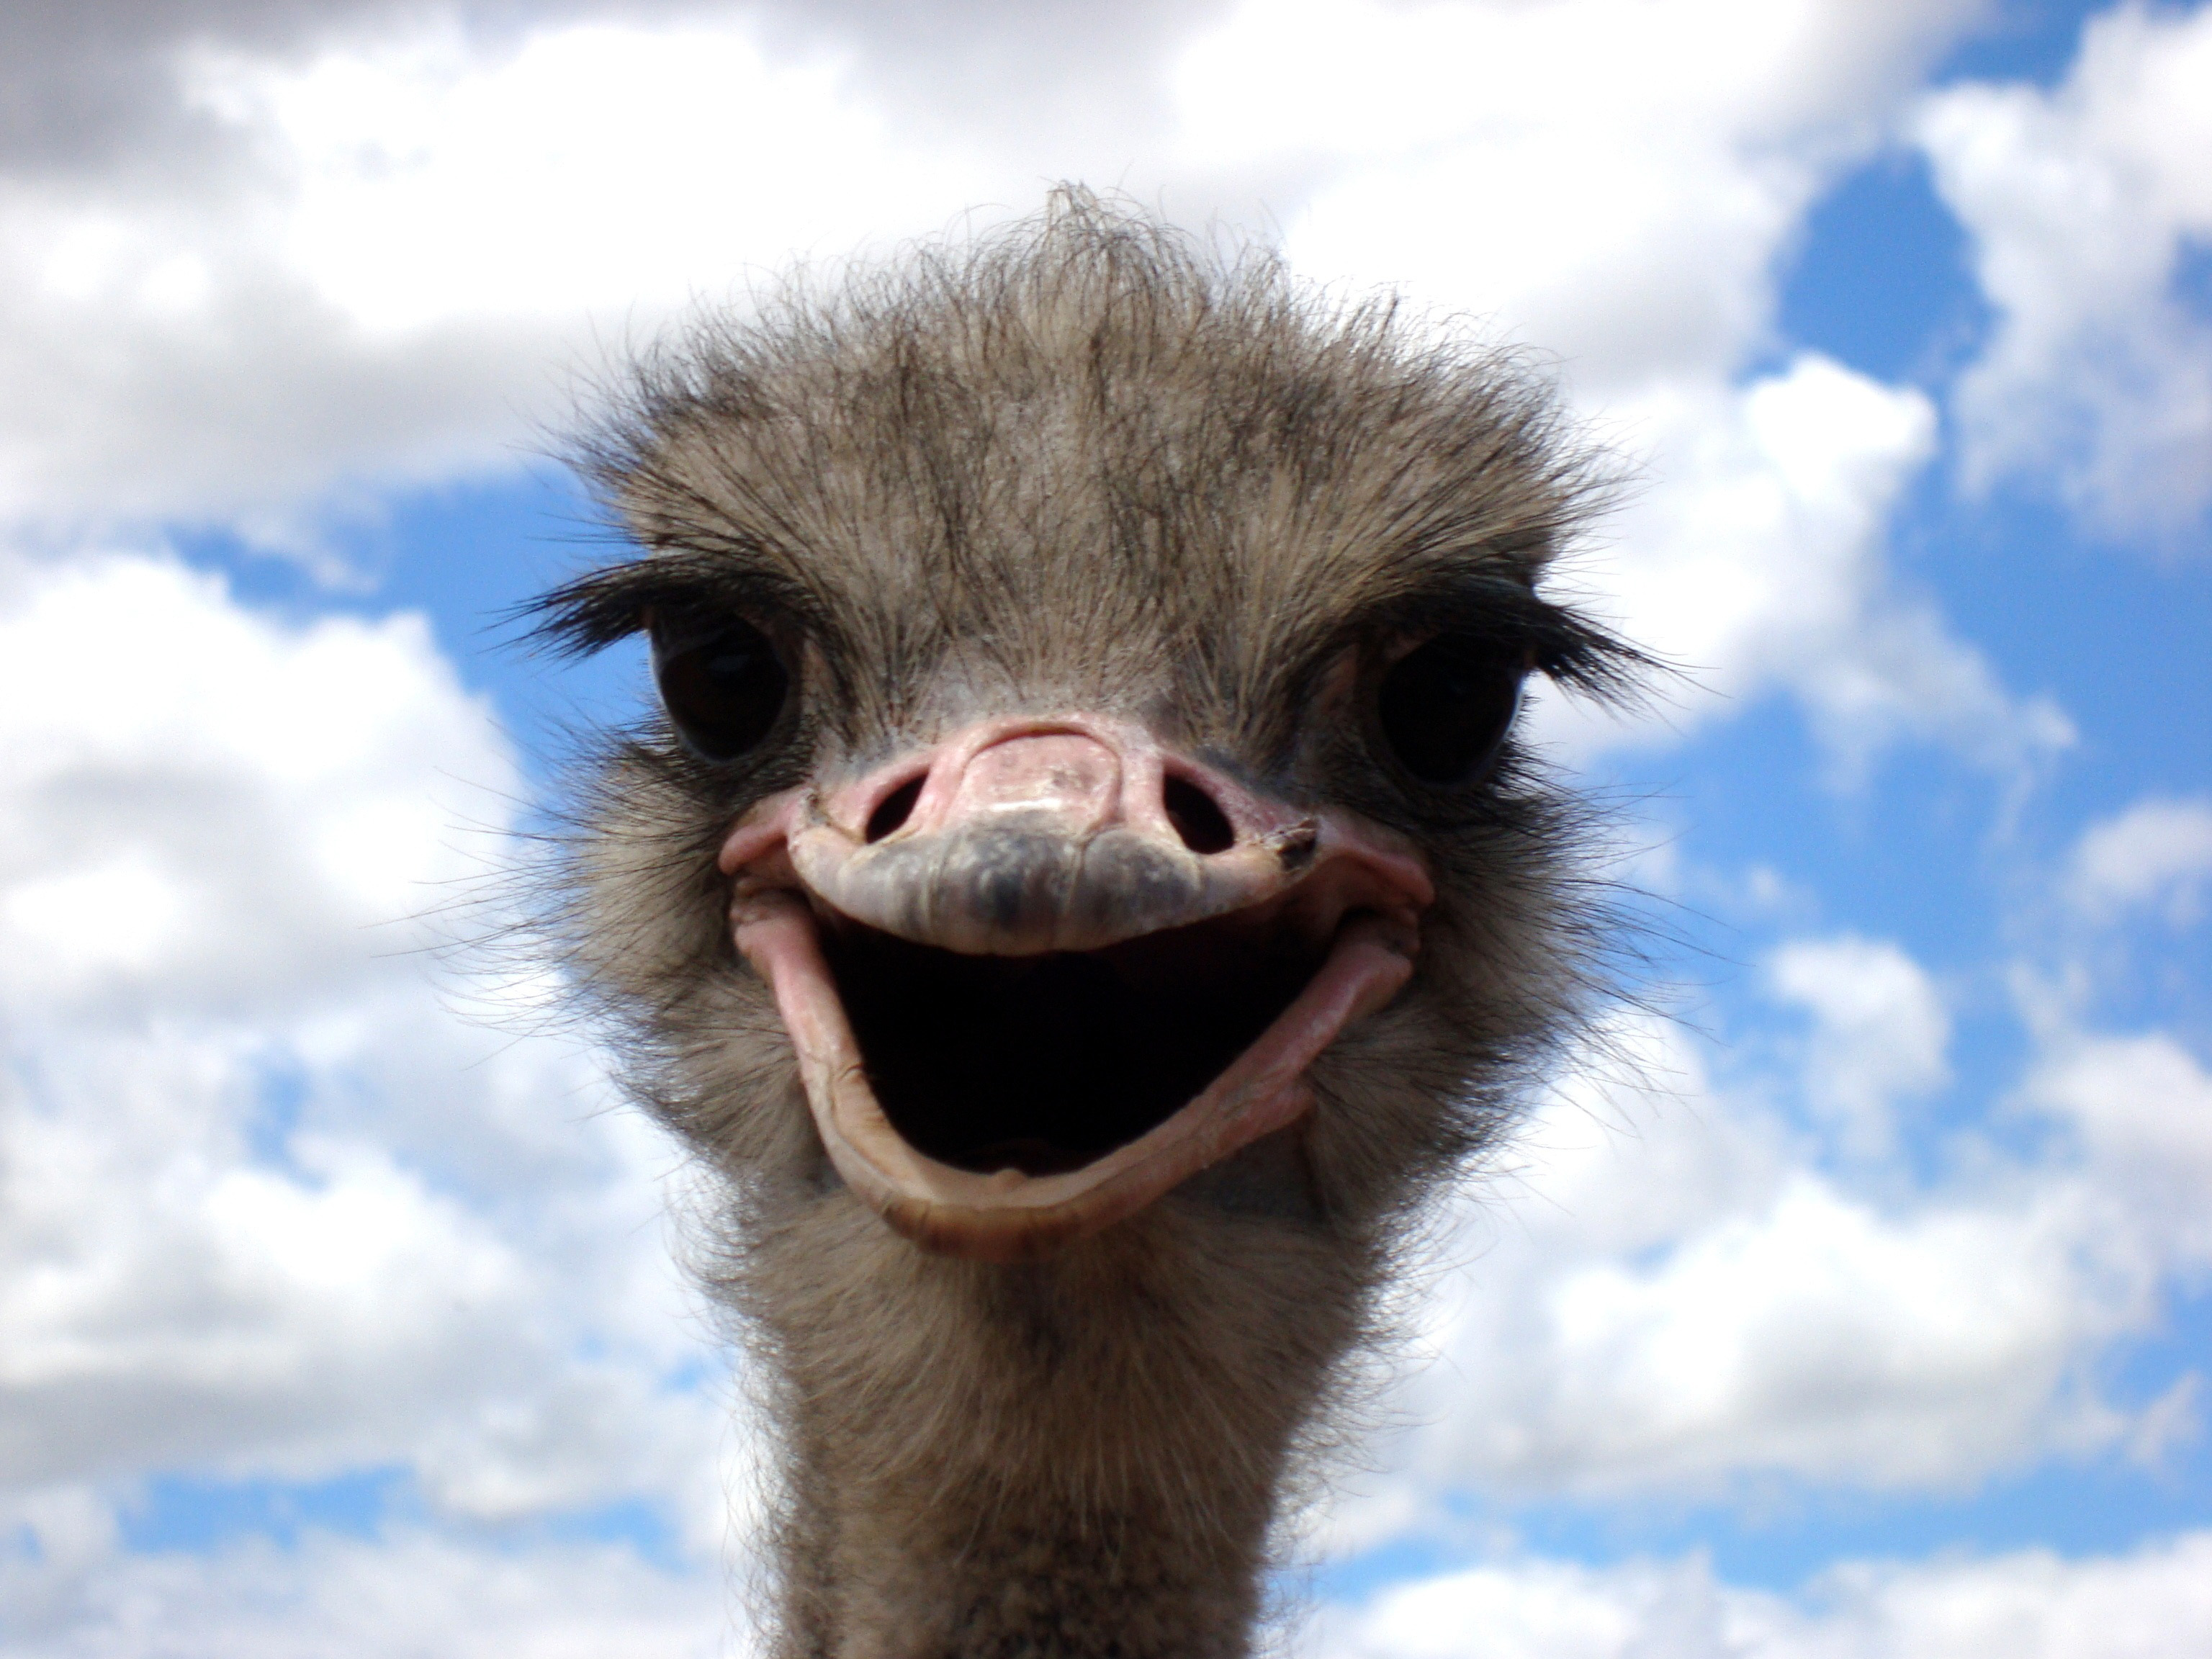 Funny Ostrich facial expression image - Free stock photo ...